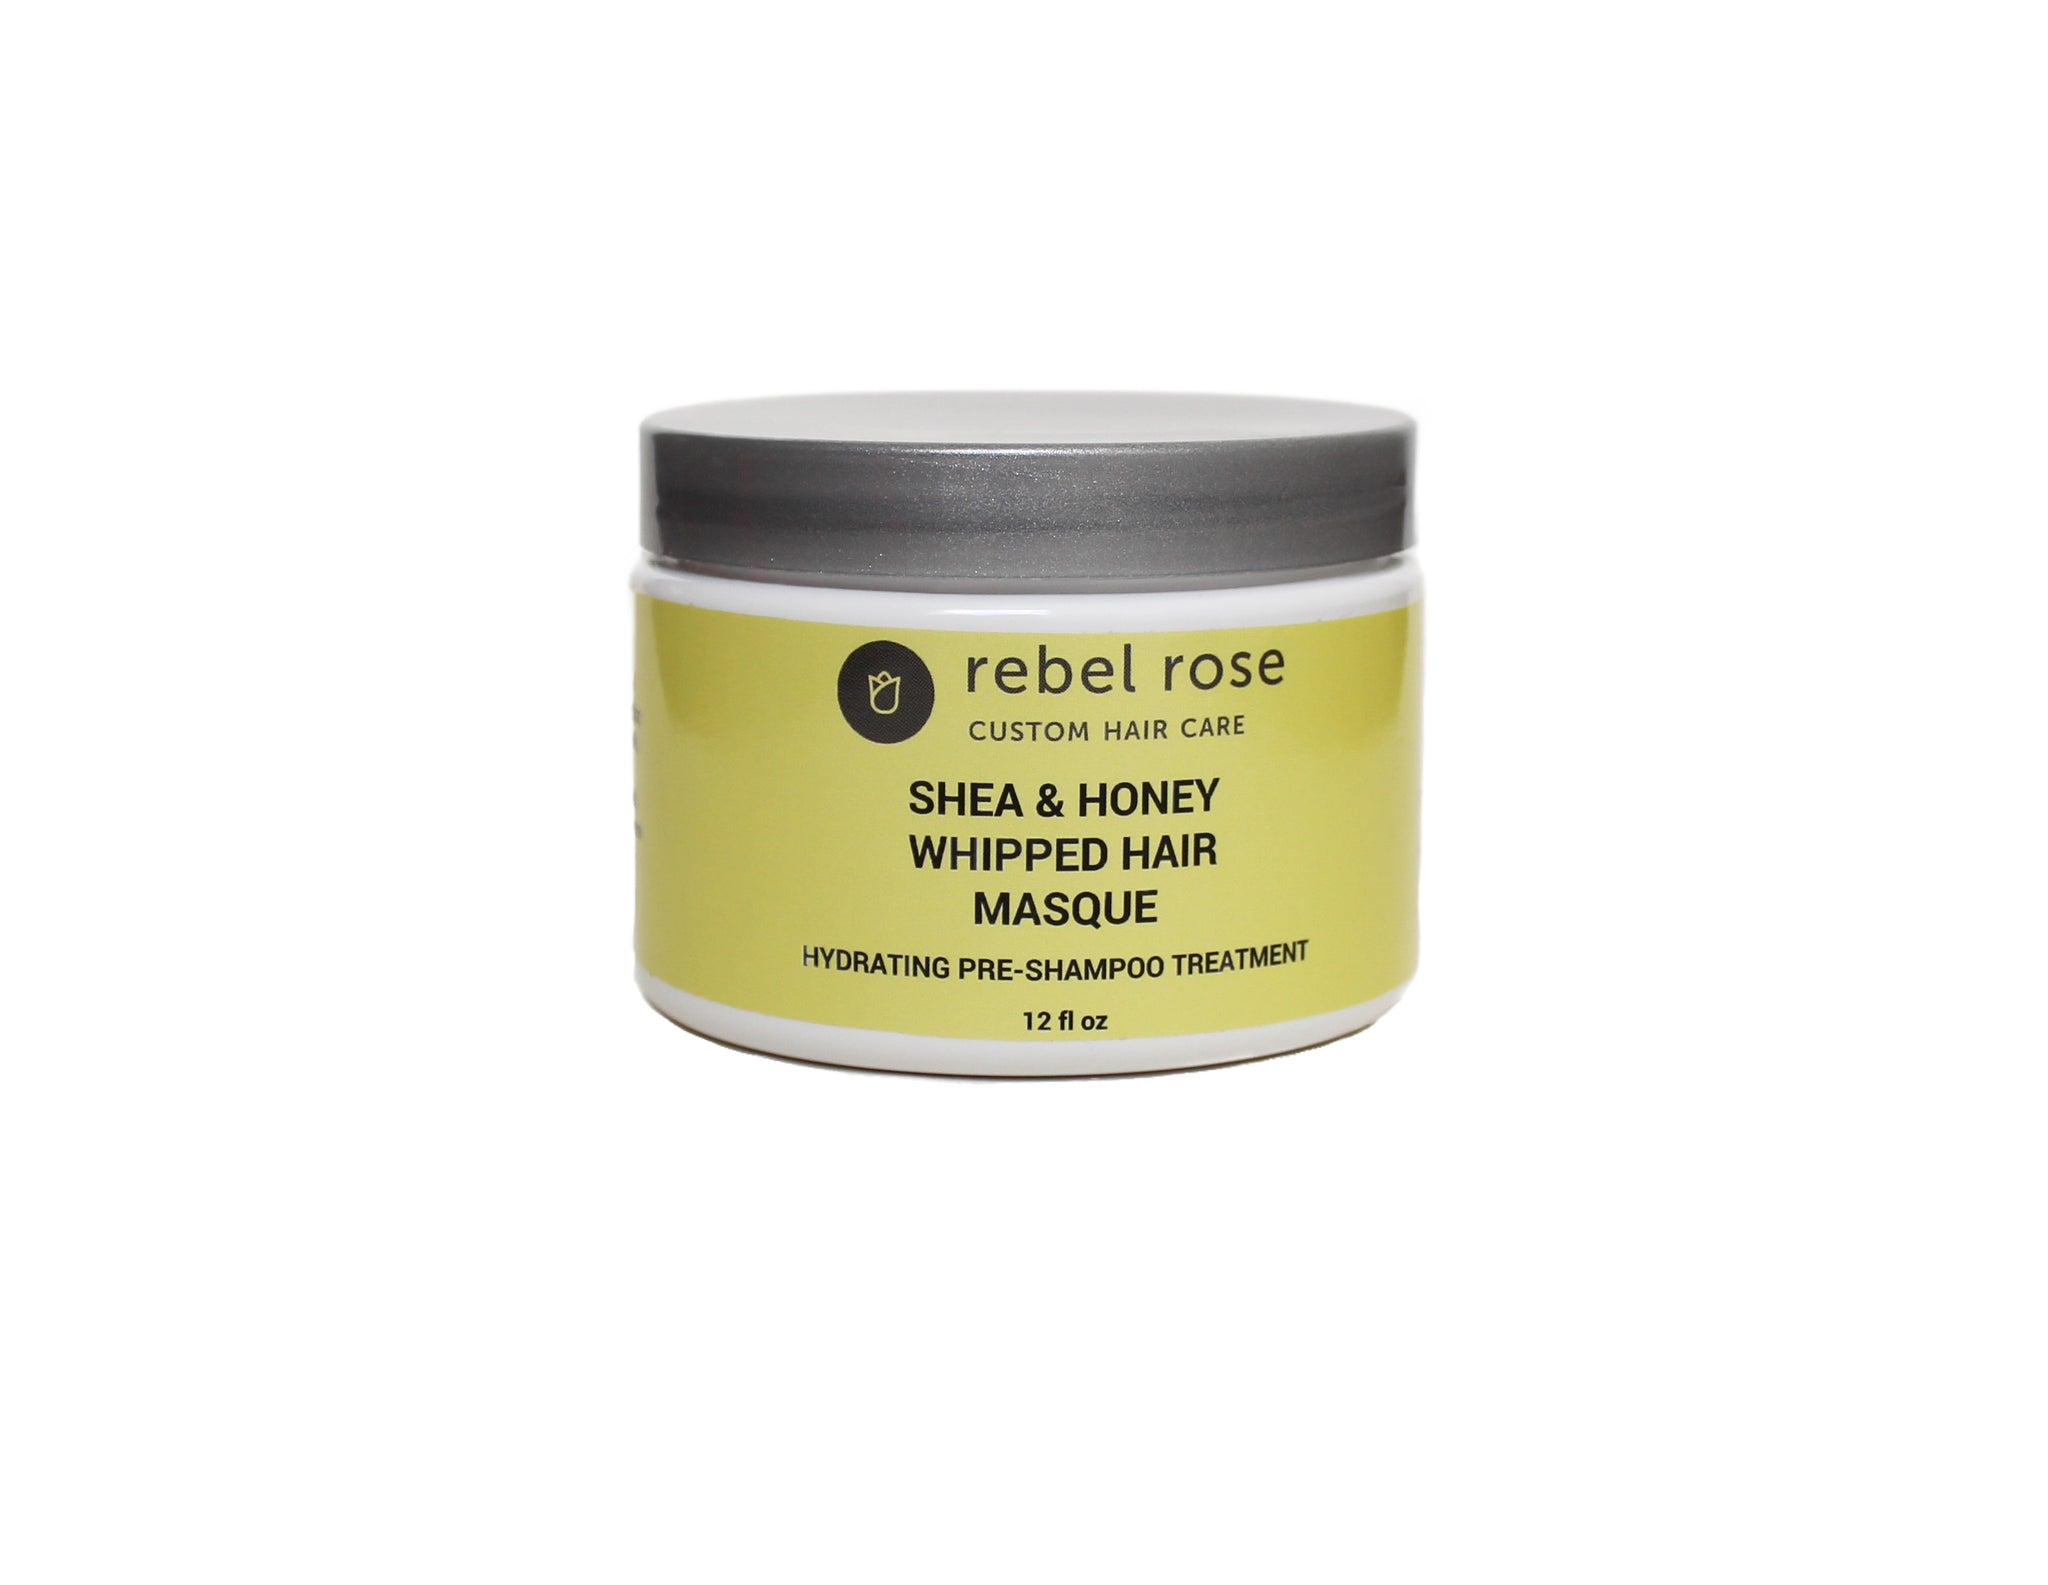 Shea & Honey Whipped Hair Masque